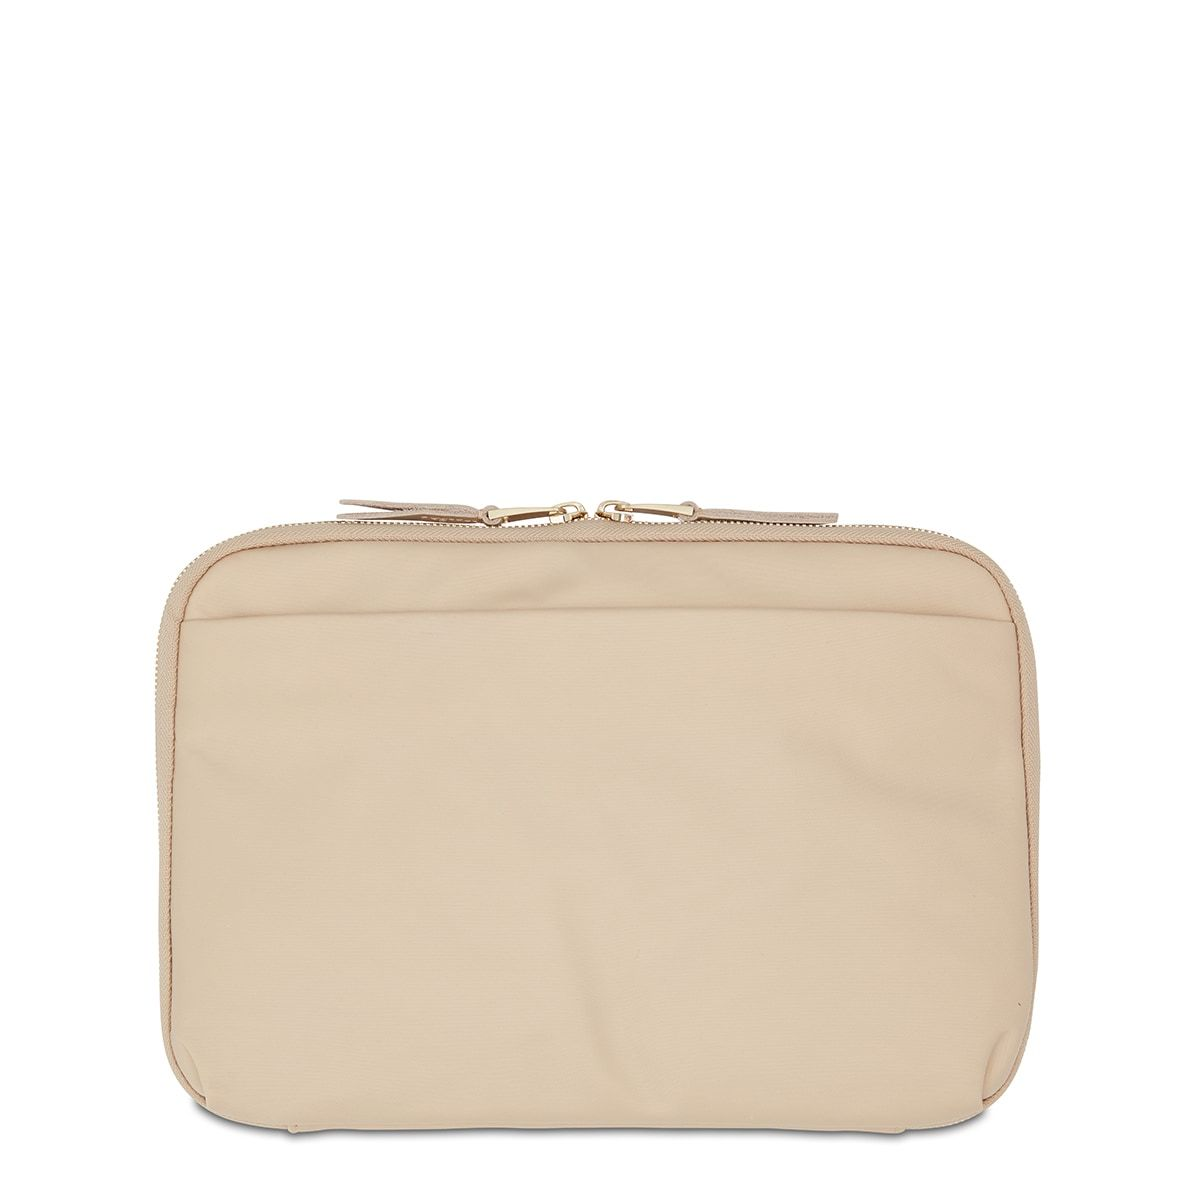 "KNOMO Knomad X-Body Organiser Tech Organiser From Back 10.5"" -  Trench Beige 